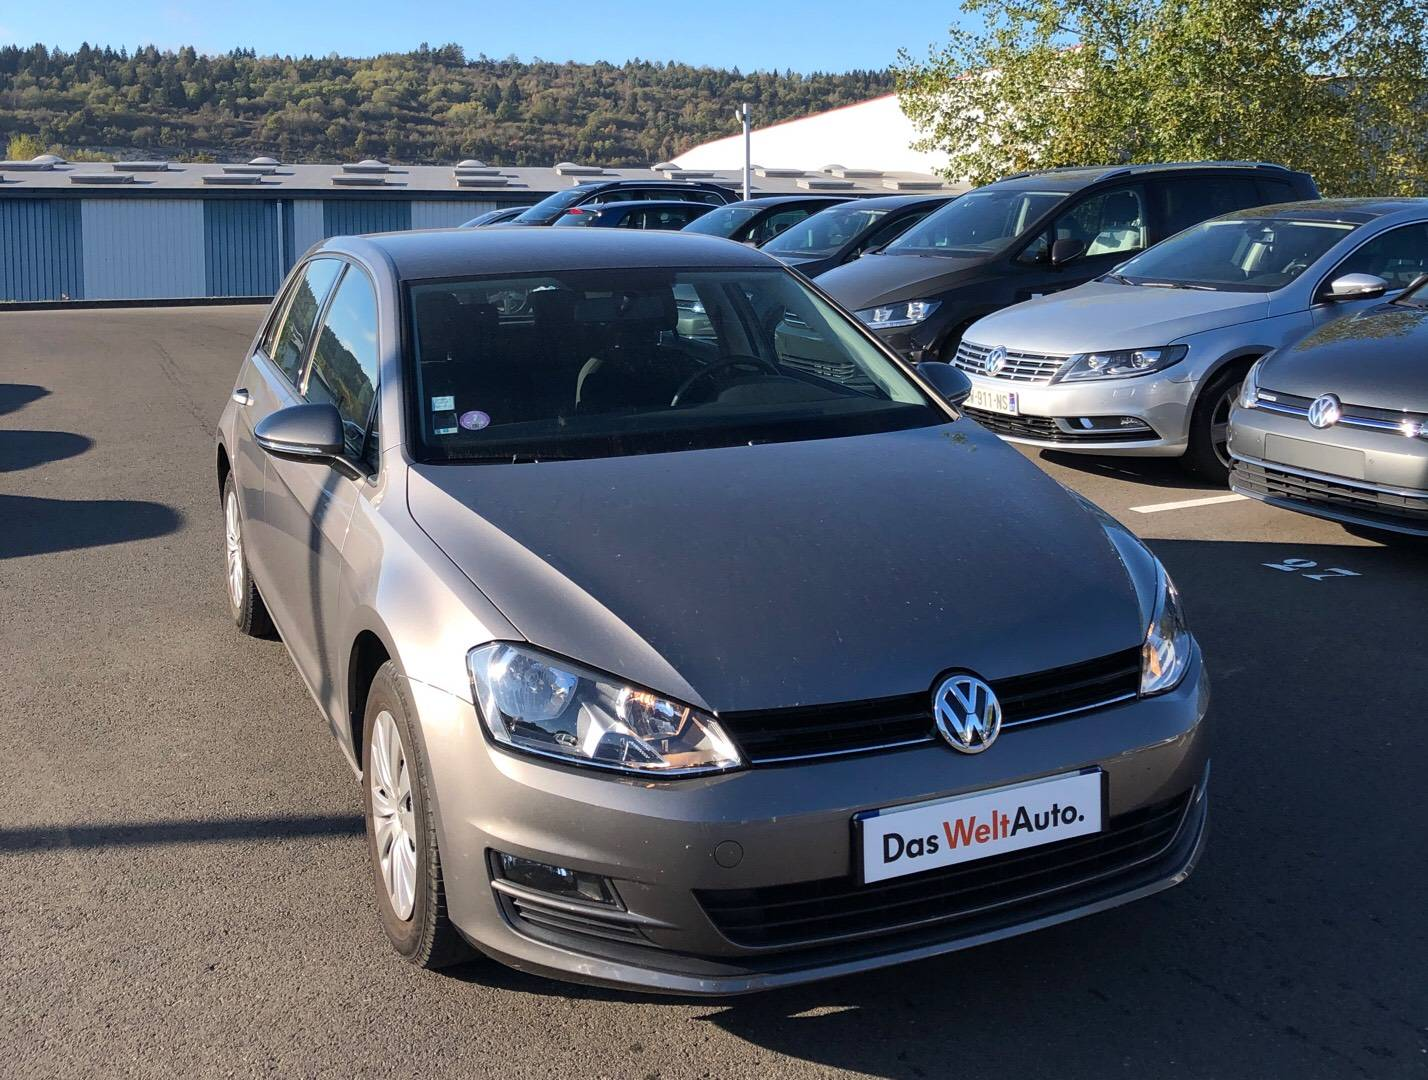 1 - Golf 1.2 TSI 105 BlueMotion Technology